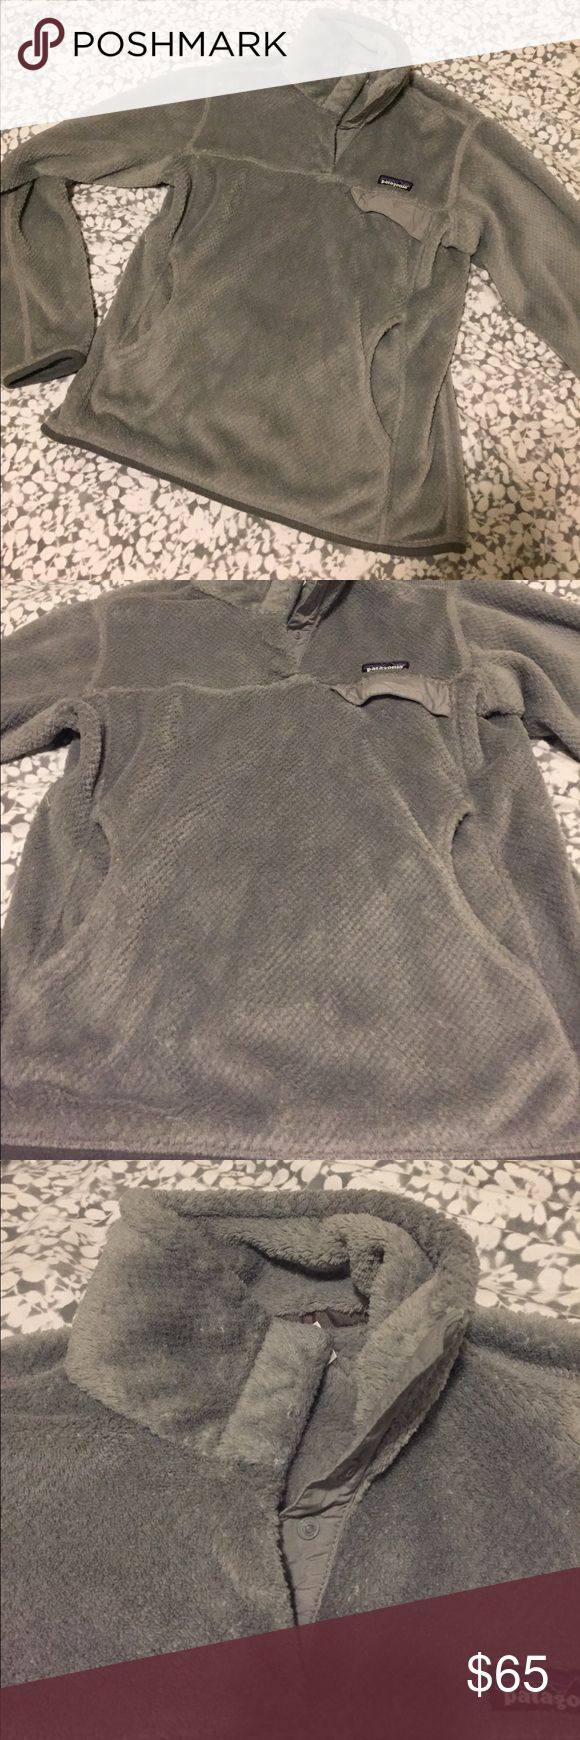 FLASH SALE!! Gray Patagonia Fleece Pullover Lightly worn but no major signs of use. This light gray Patagonia fleece pullover is perfect. Patagonia Jackets & Coats